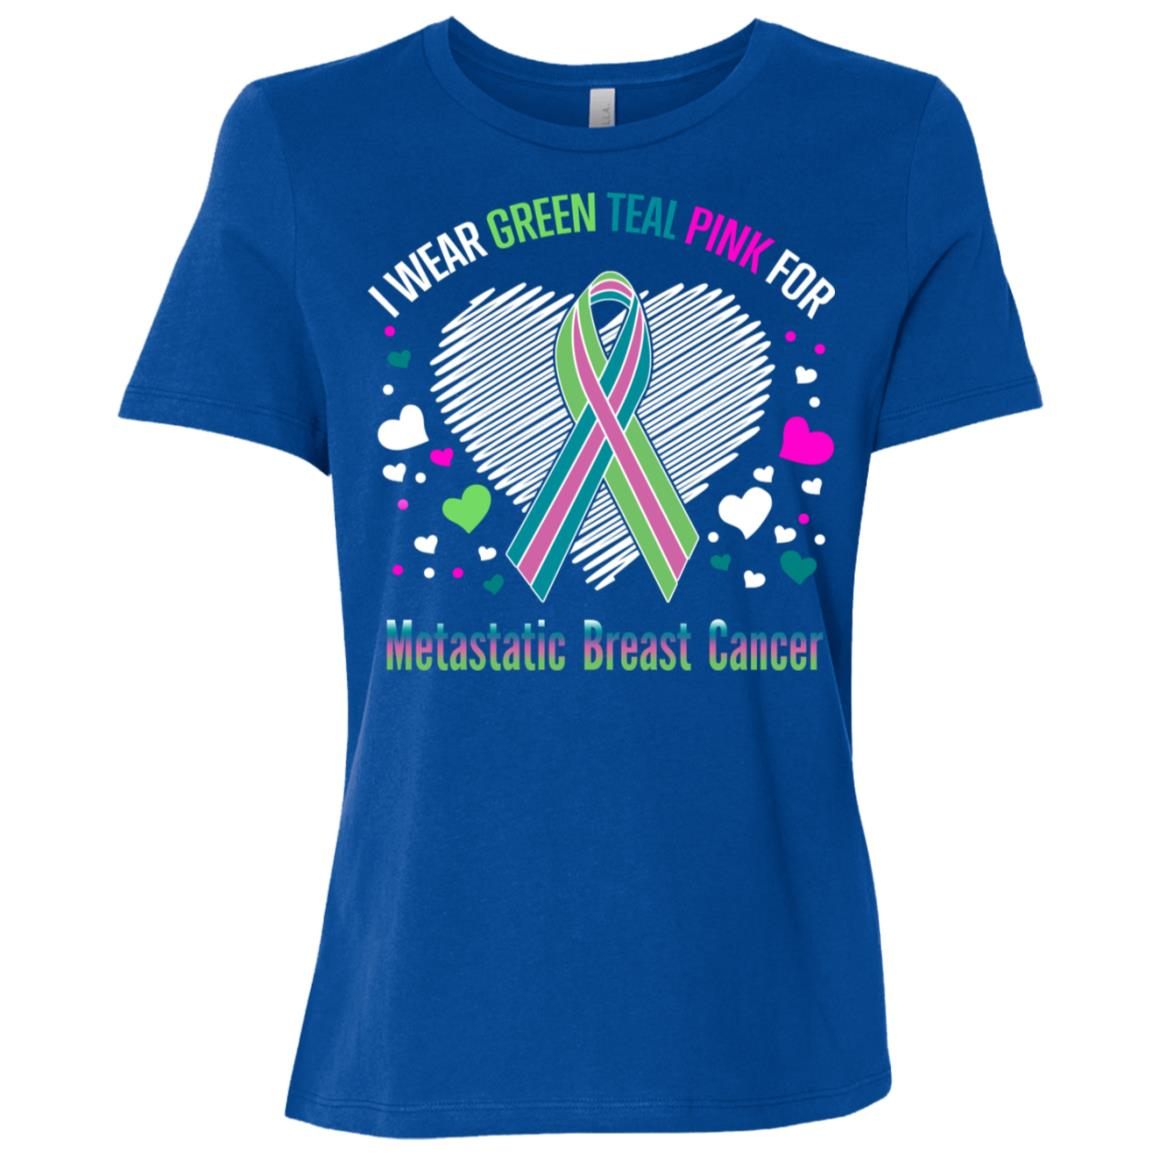 I Wear Green Teal Pink For Metastatic Breast Cancer Women Short Sleeve T-Shirt